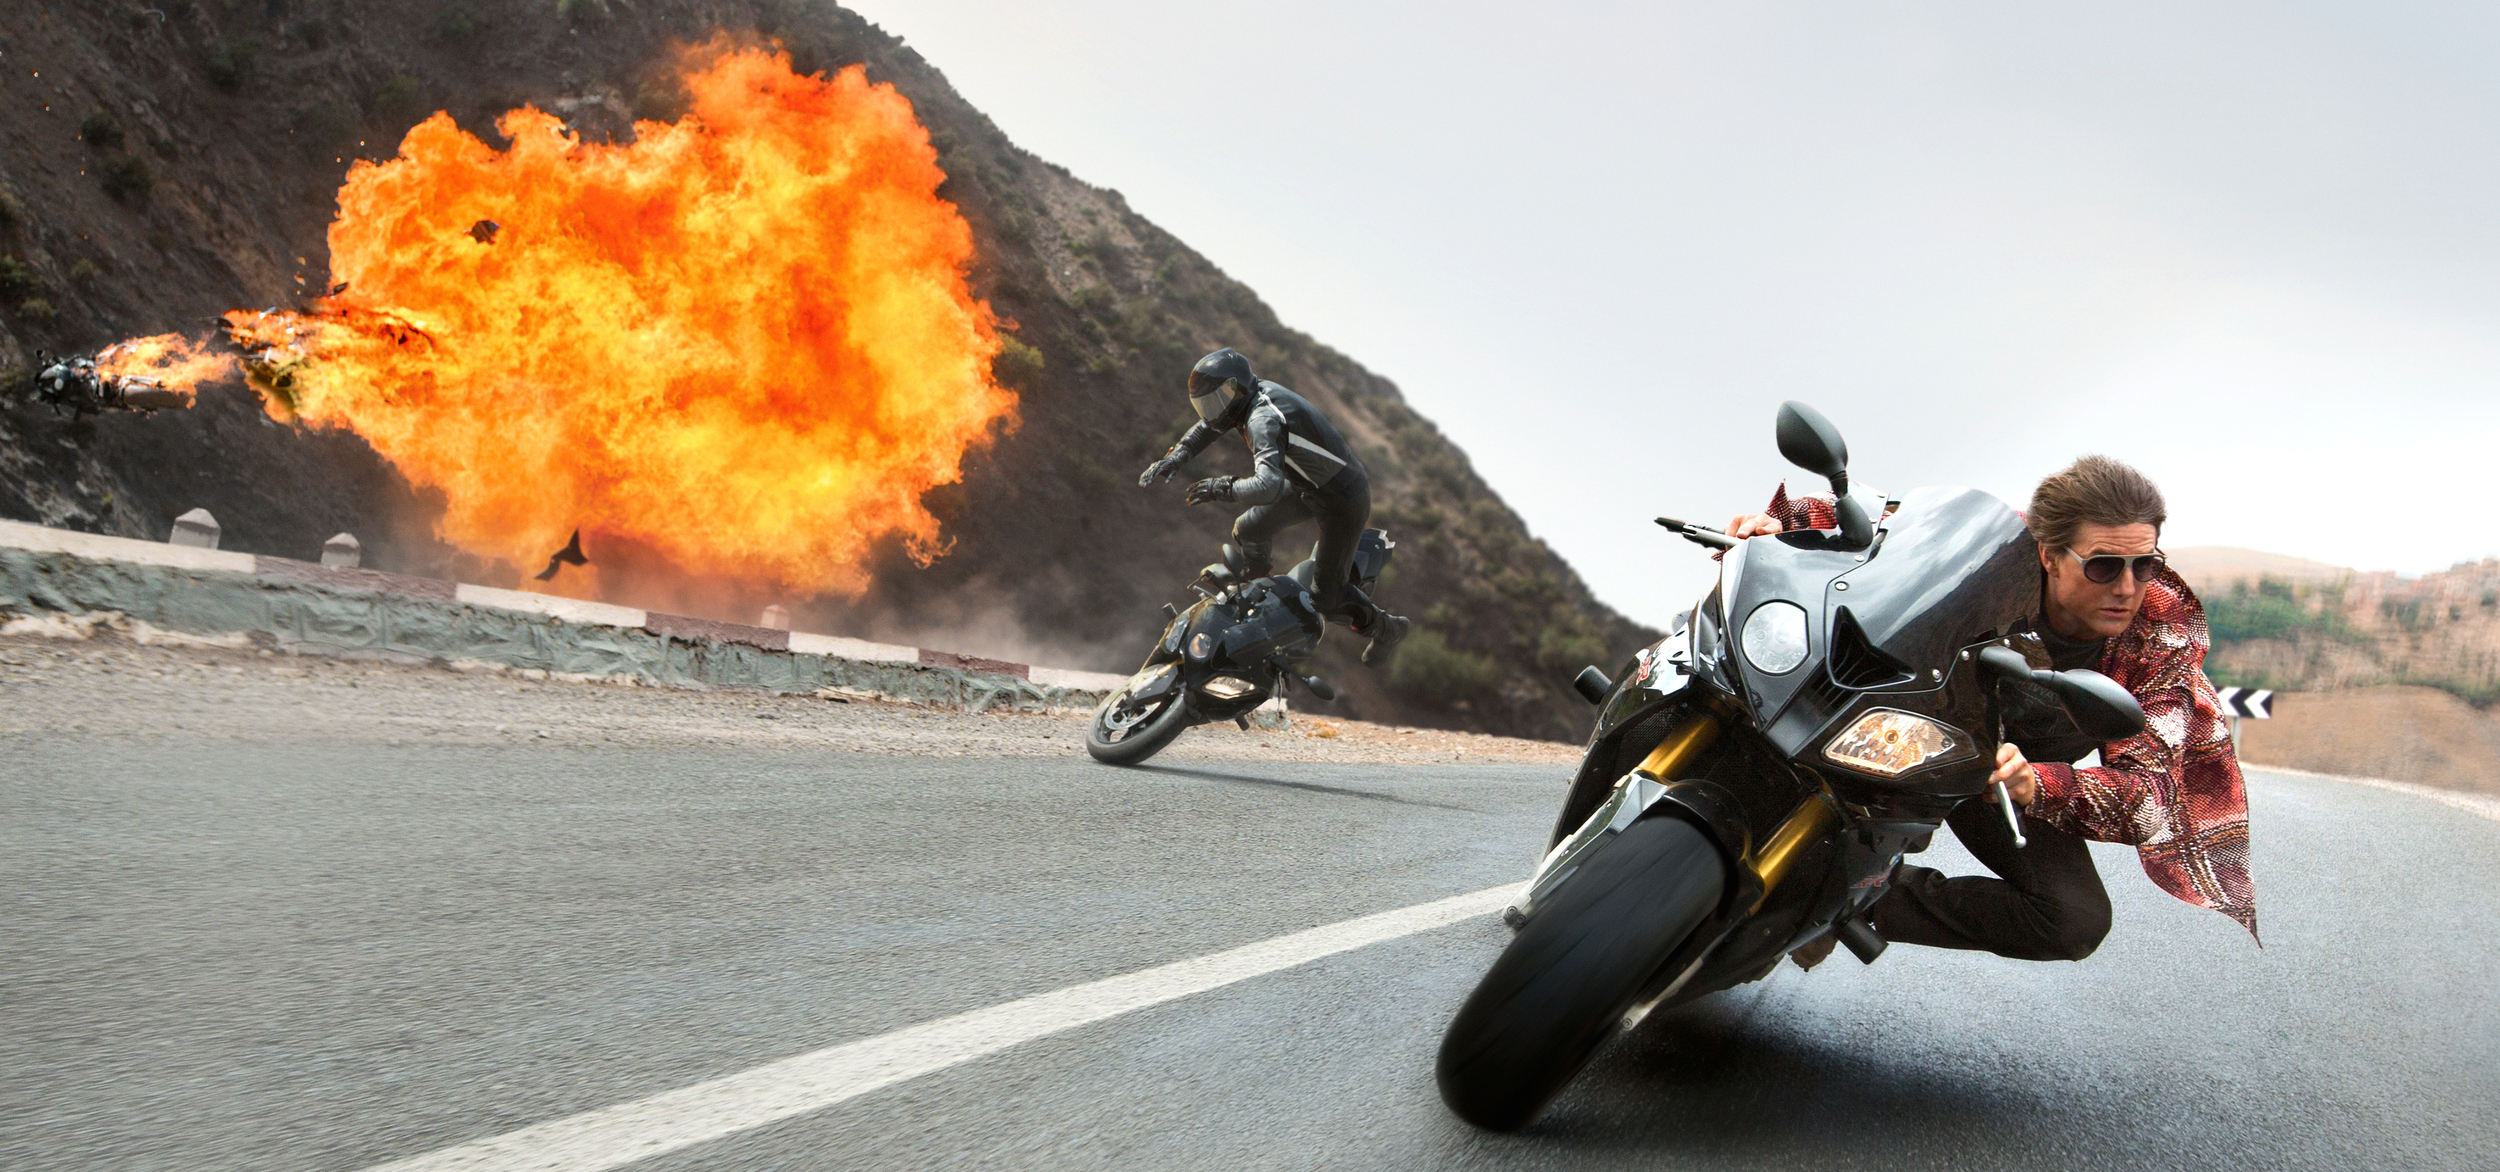 Tom Cruise plays Ethan Hunt in Mission: Impossible Rogue Nation from Paramount Pictures